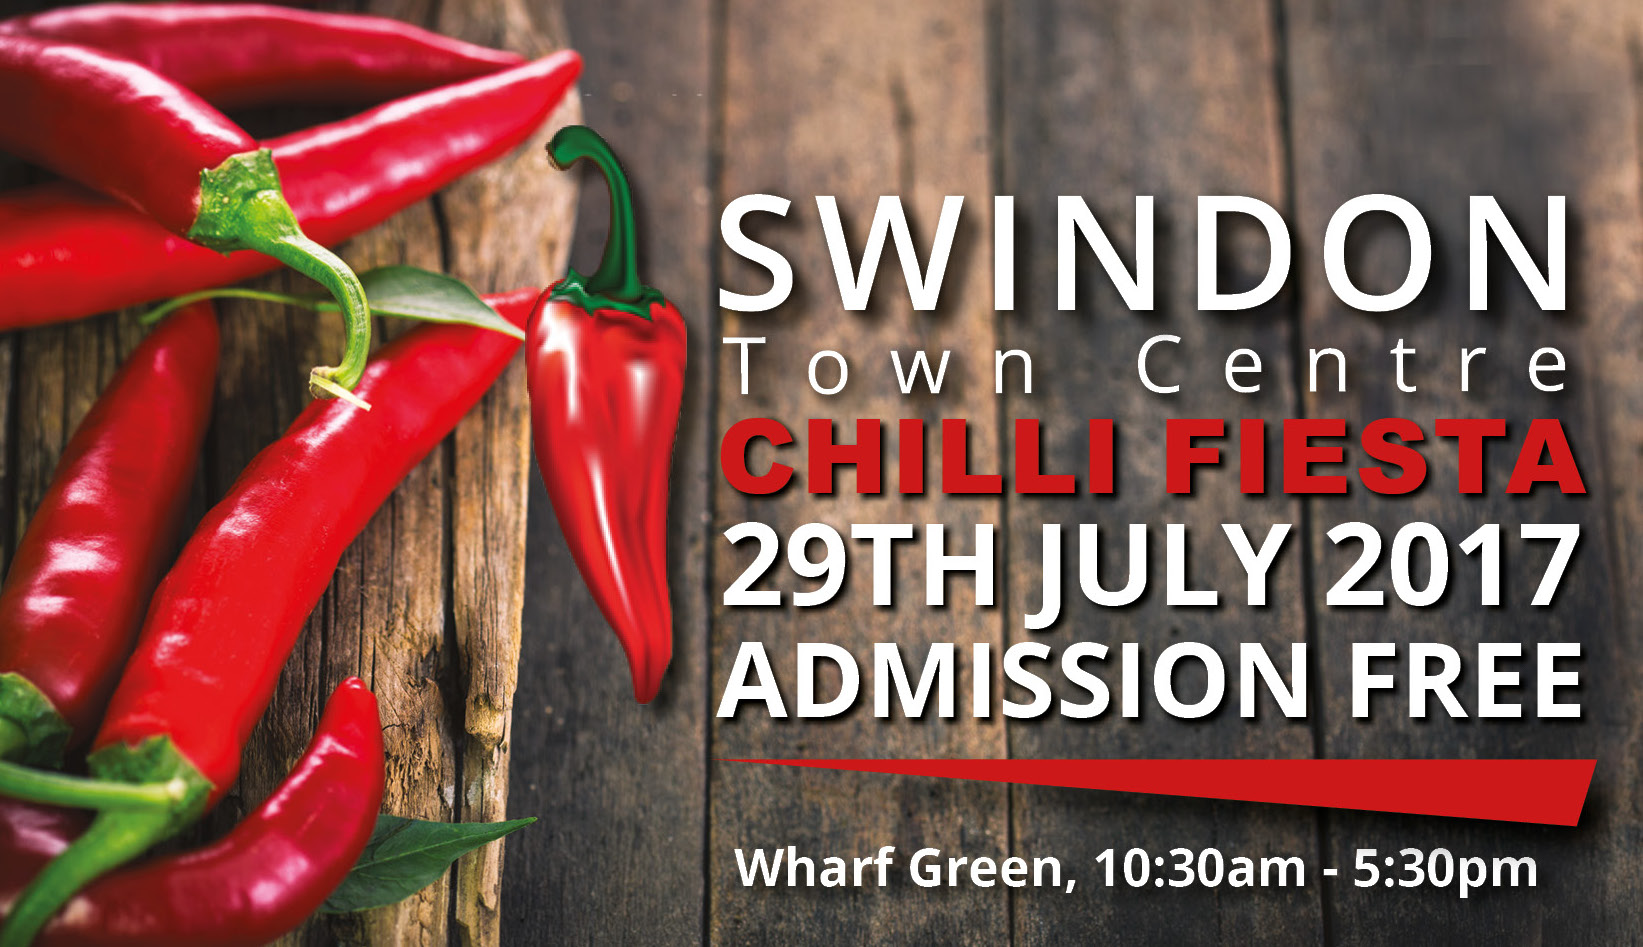 Chilli Fiesta Set to Spice Things Up in the Town Centre